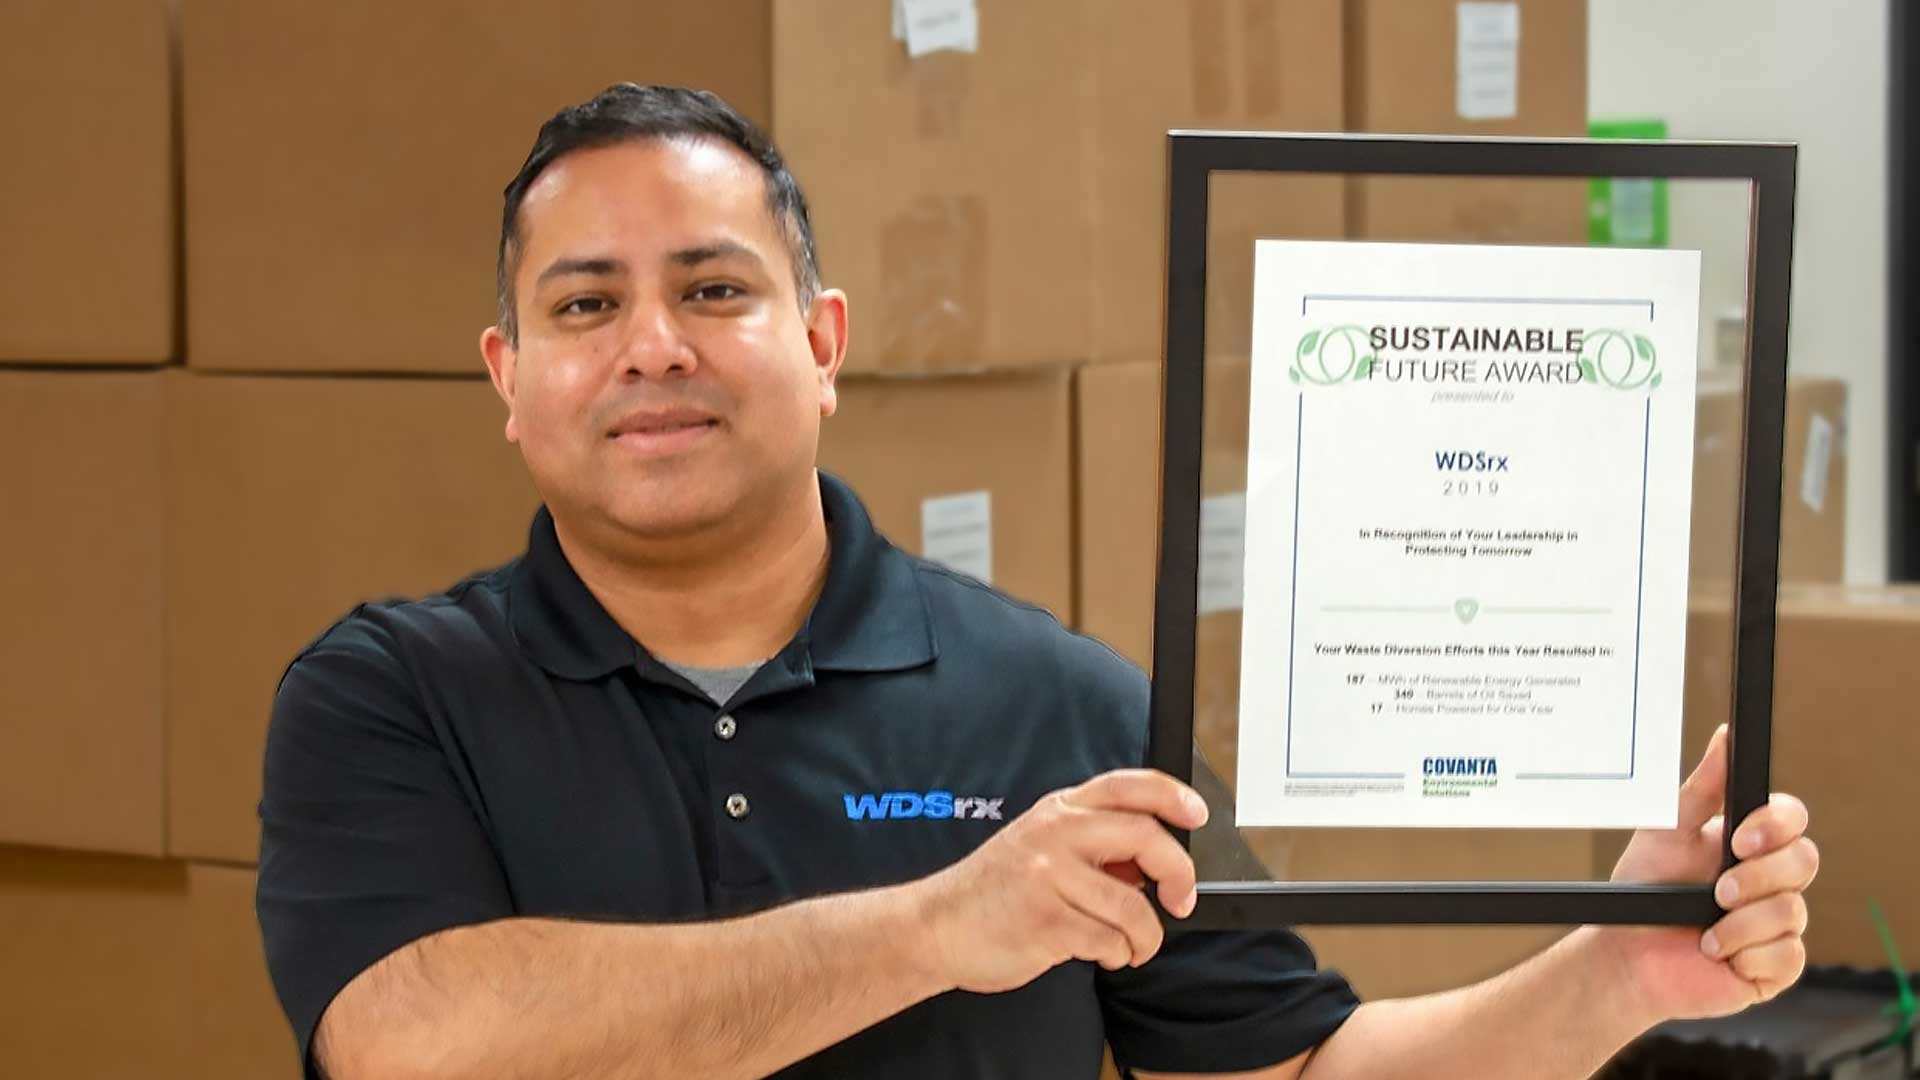 WDSrx received a recognition for their actions implementing sustainability.